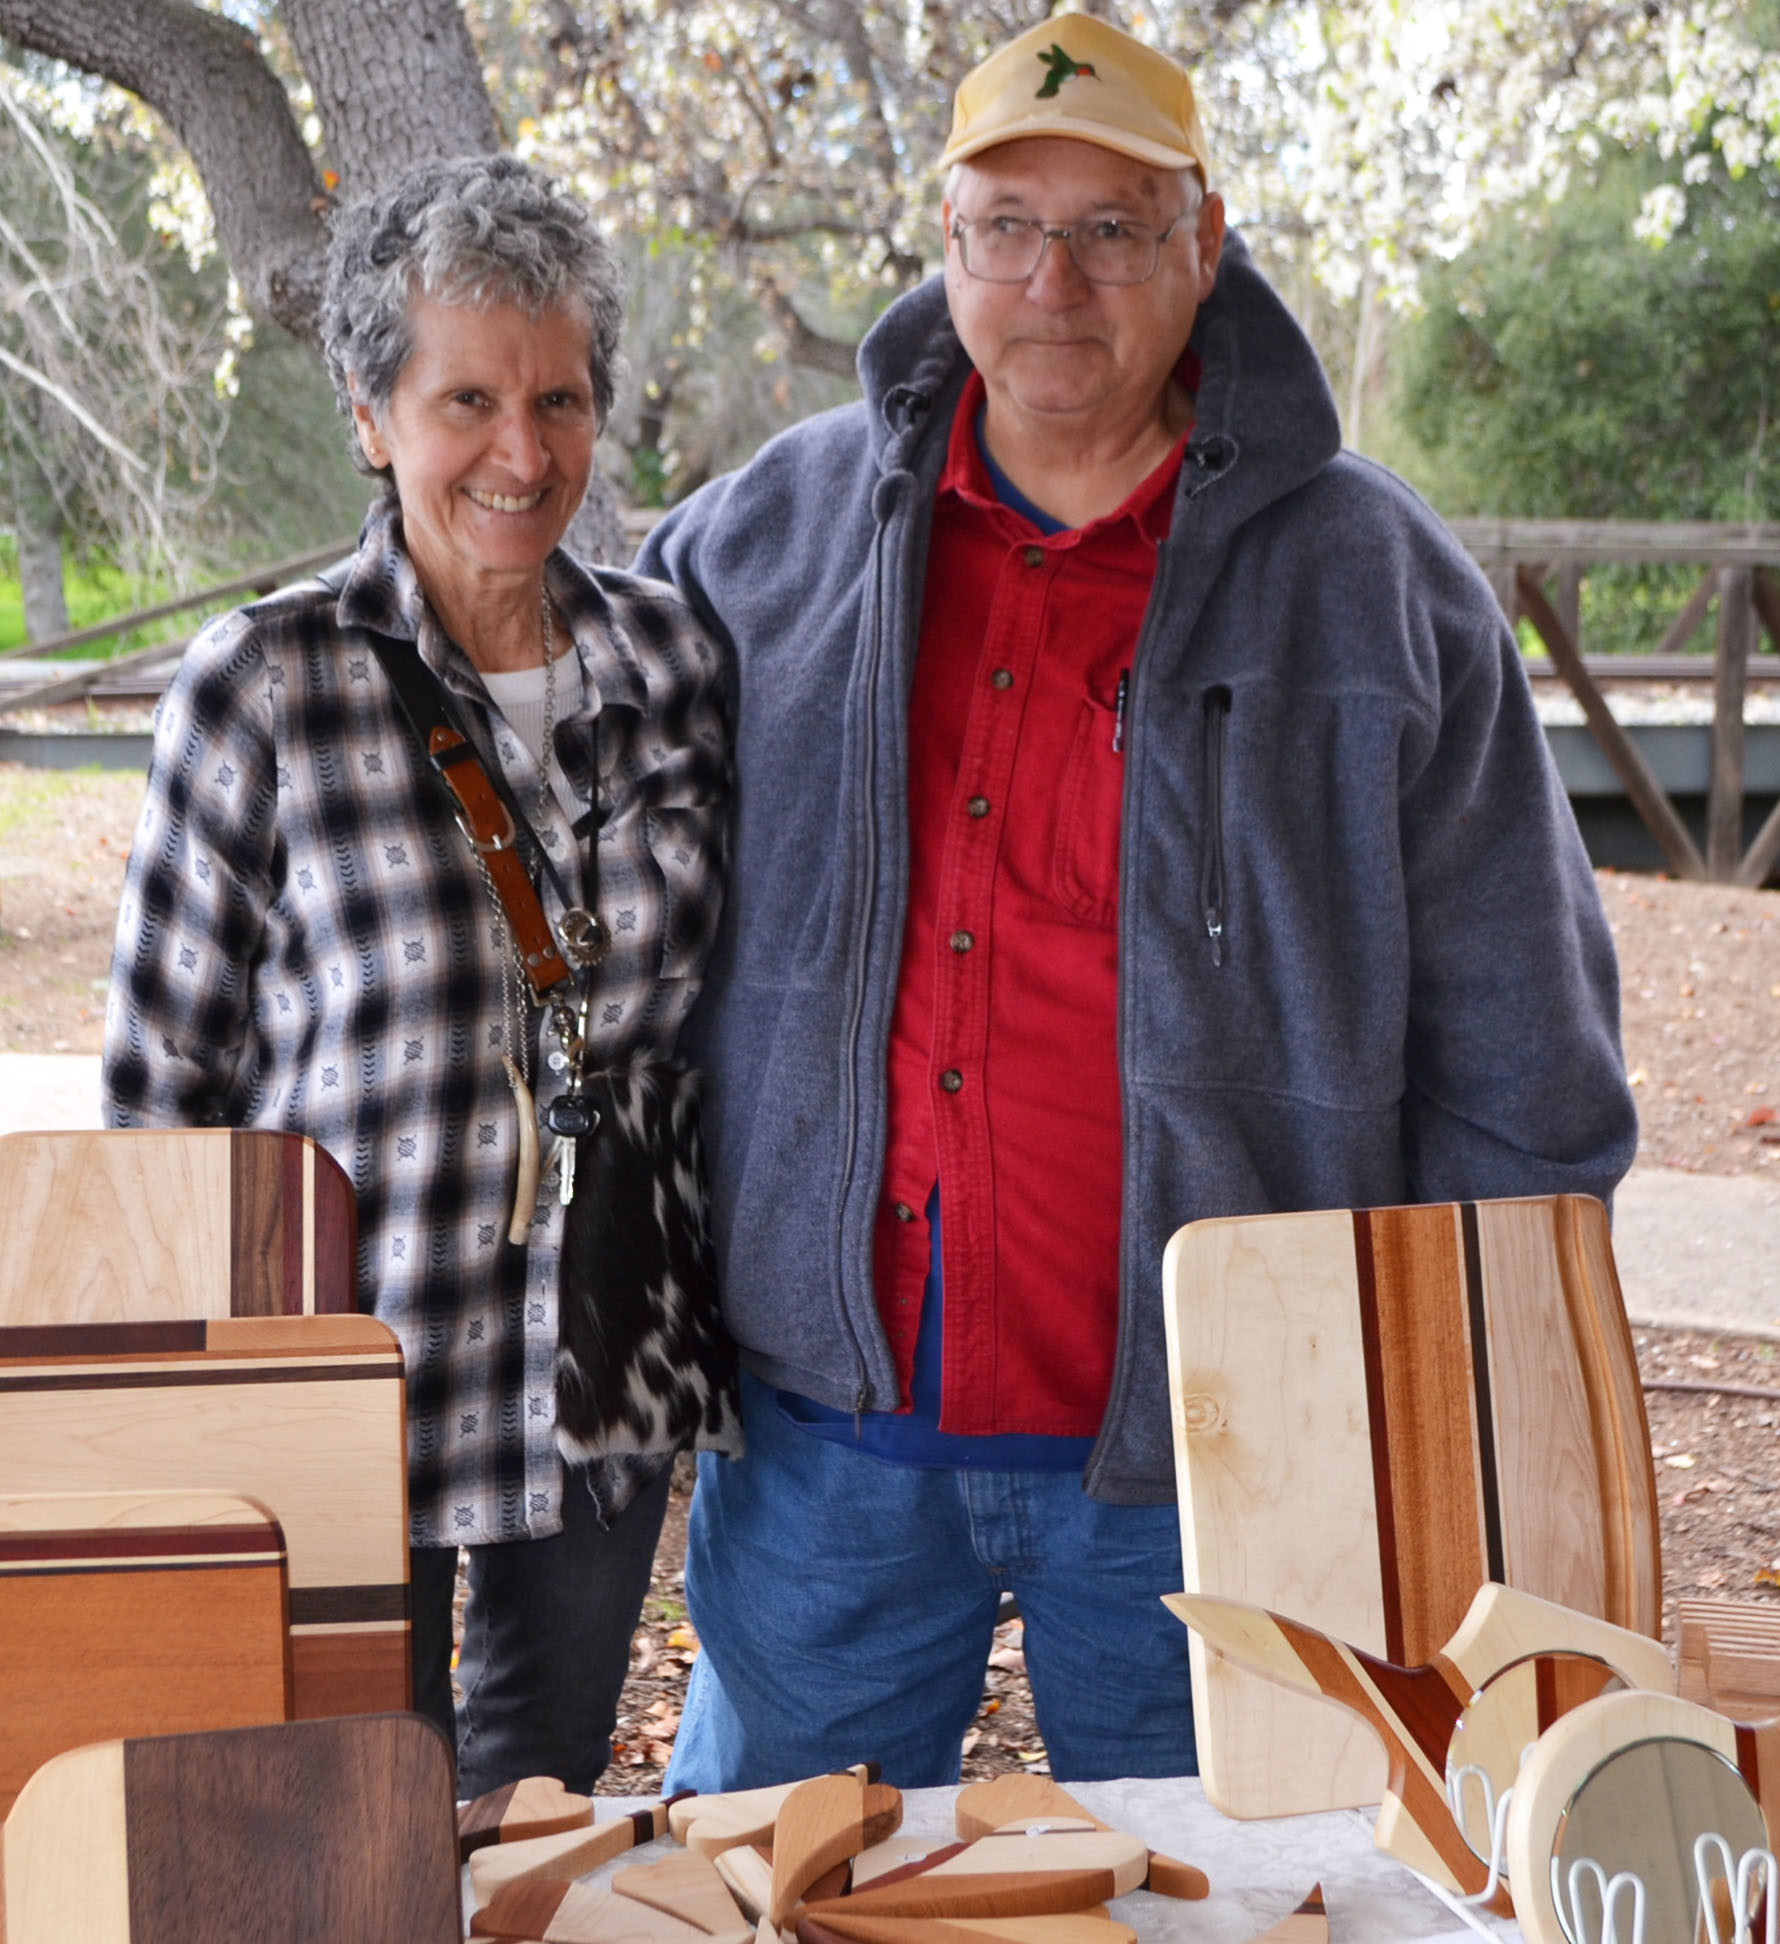 Dennis Caldwell, president of the Poway Arts and Crafts Guild, with his wife Leslie. The Caldwells have sold their handmade woodworking crafts at the Boardwalk Craft Market for about 10 years.